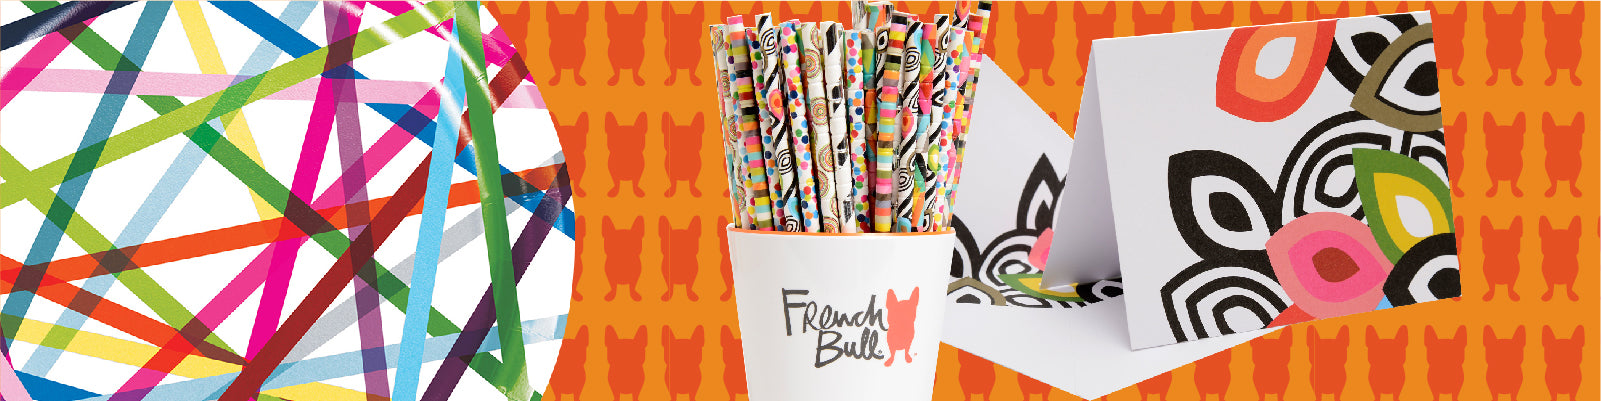 French Bull Paper Partyware